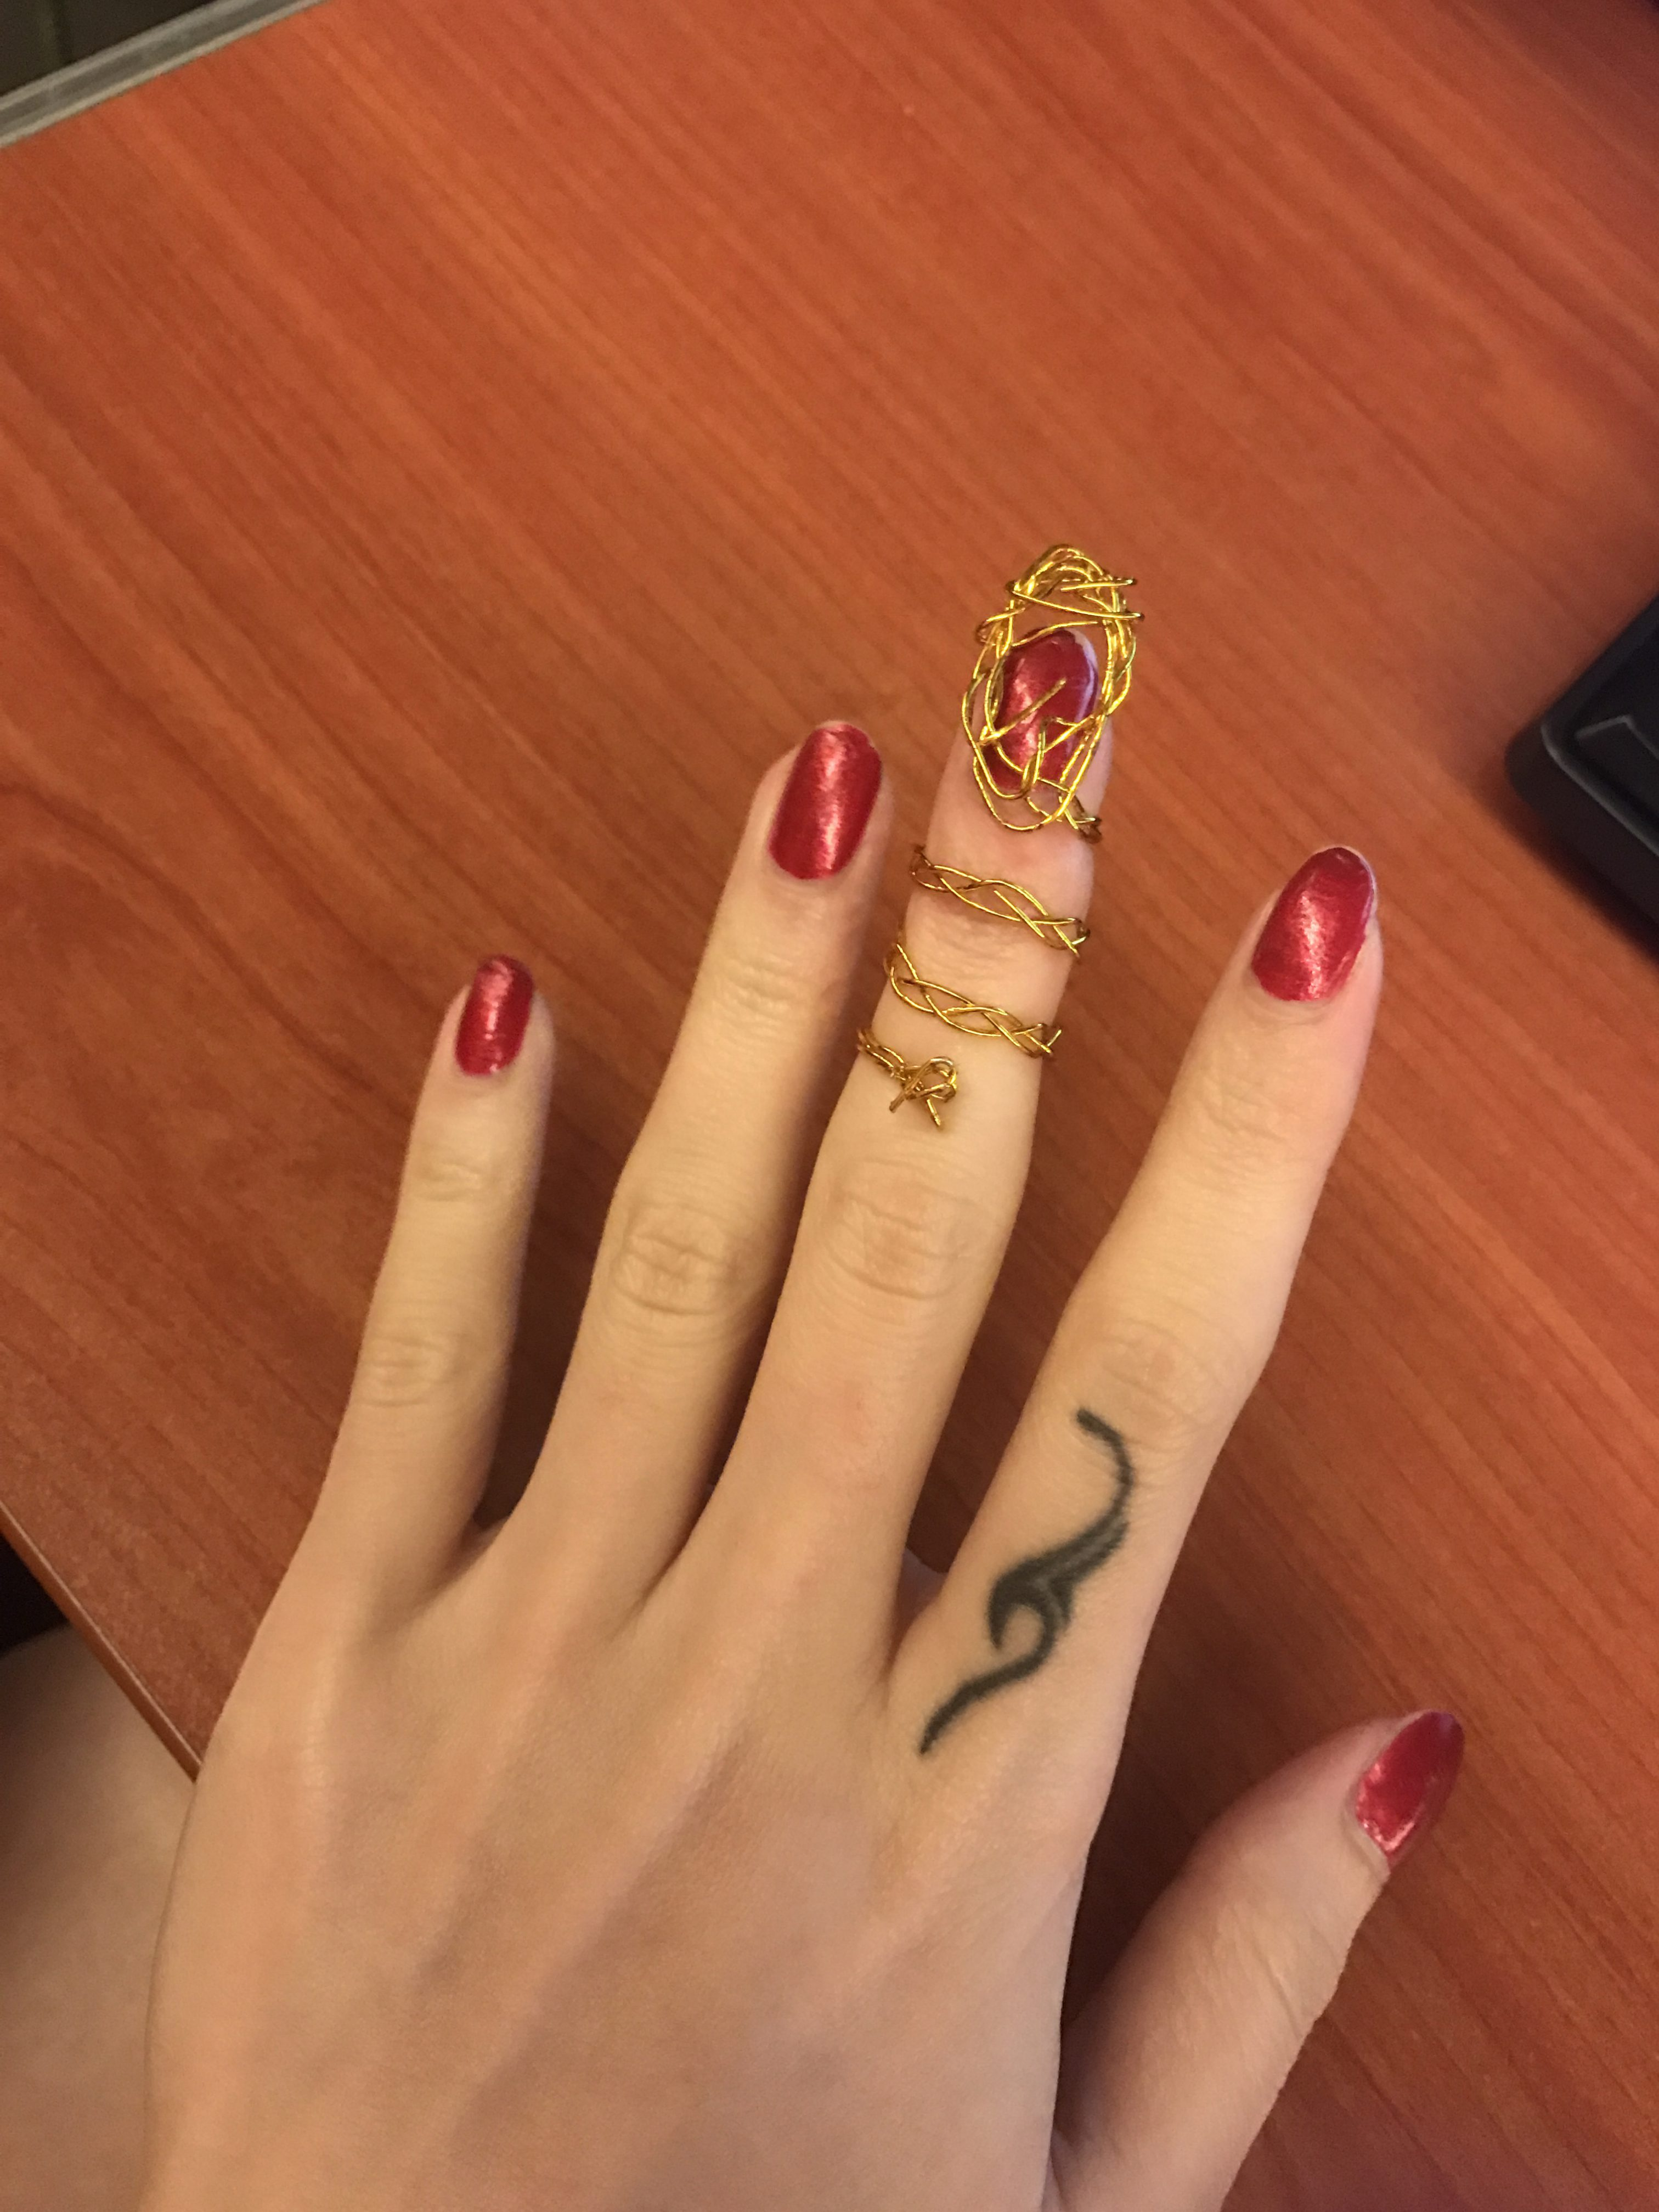 This is the wire version of the nail ring. I find it a bit inconvenient to bend my finger but not to a very bad extent. I do have some rings that will limit my finger movements. Normally when I need to do something important I will just remove the rings temporarily.